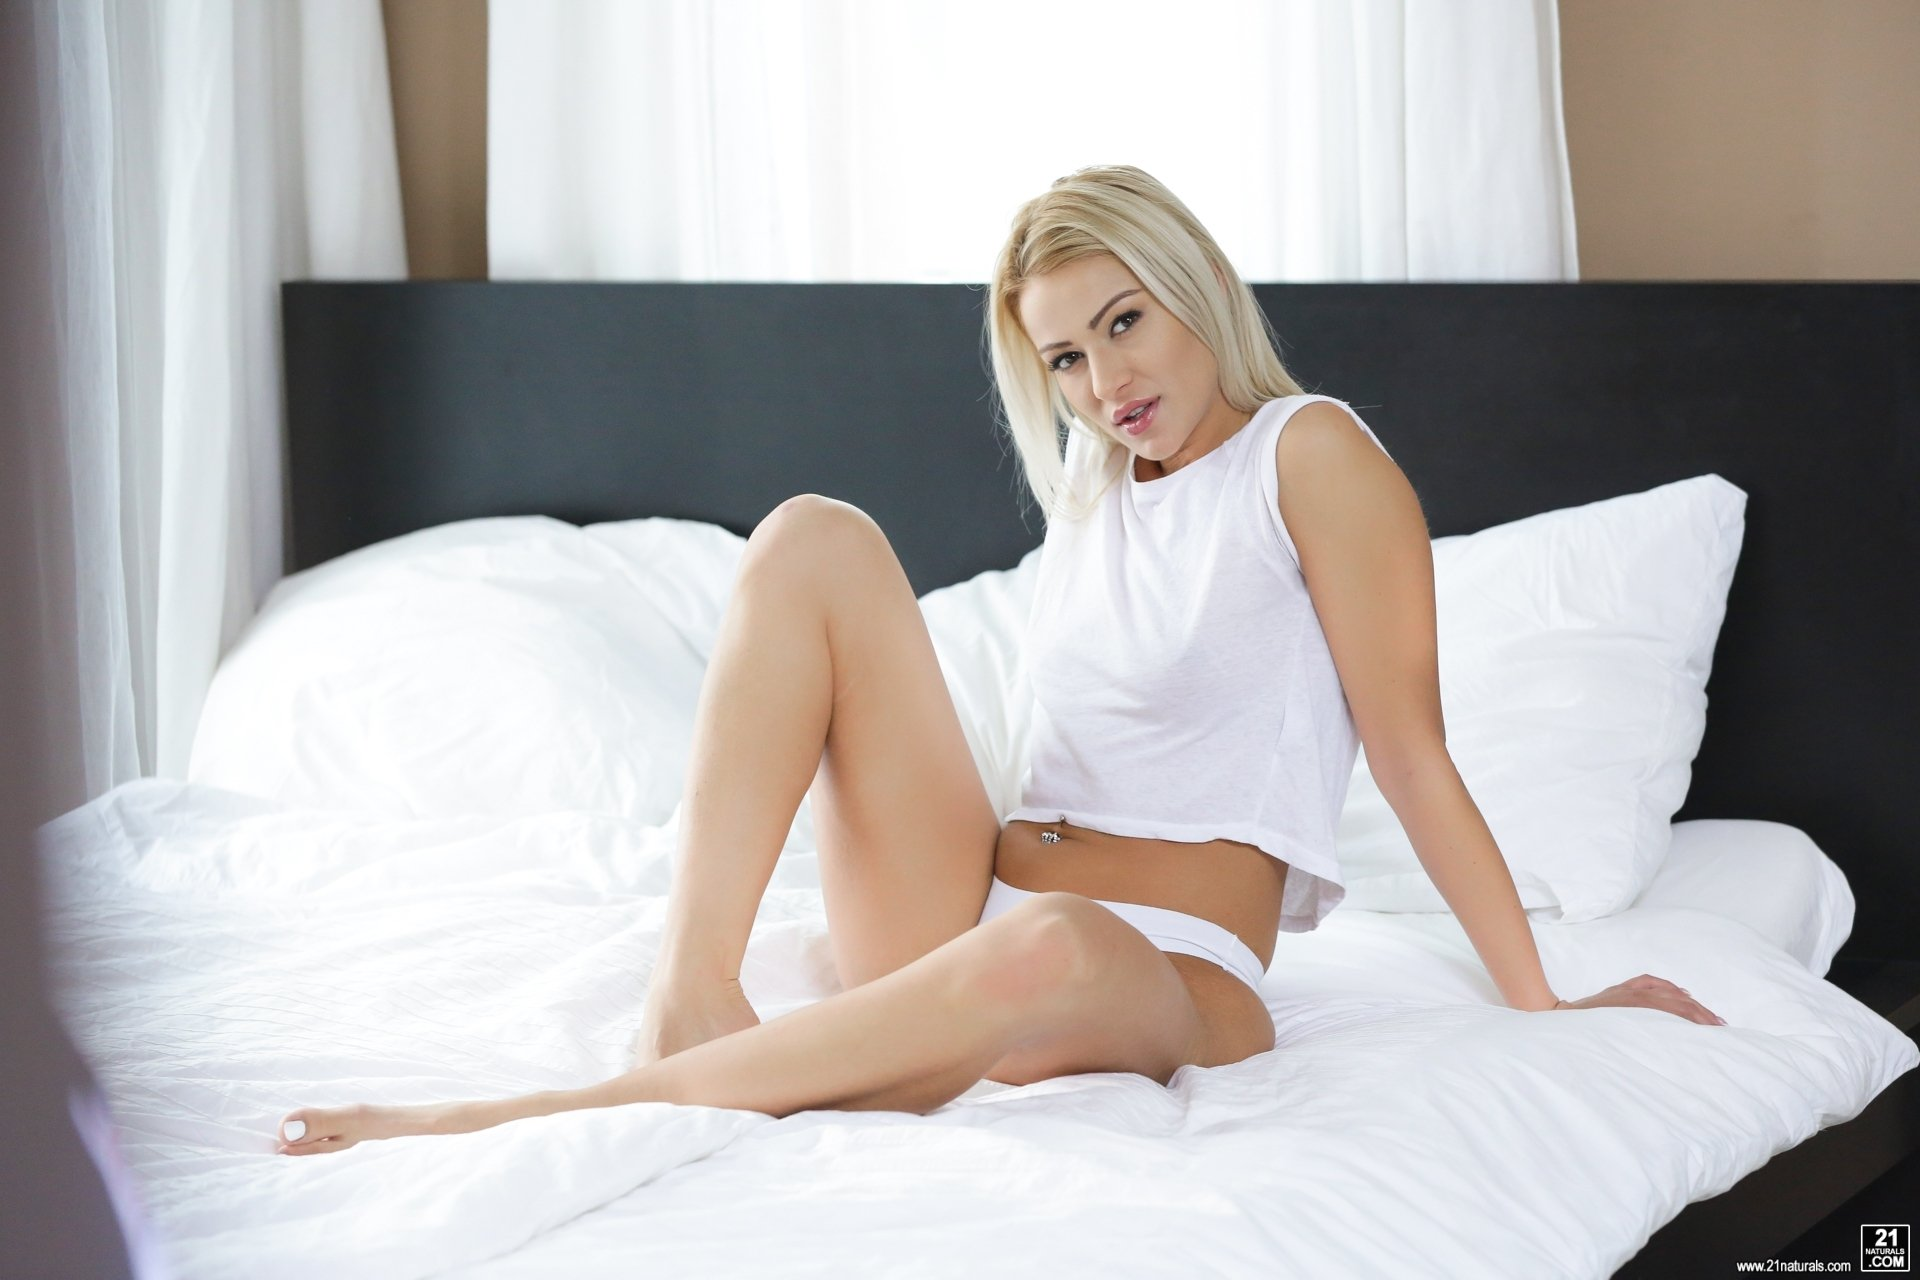 To download free of charge porno without registration Girl enjoys her first time live webcam show